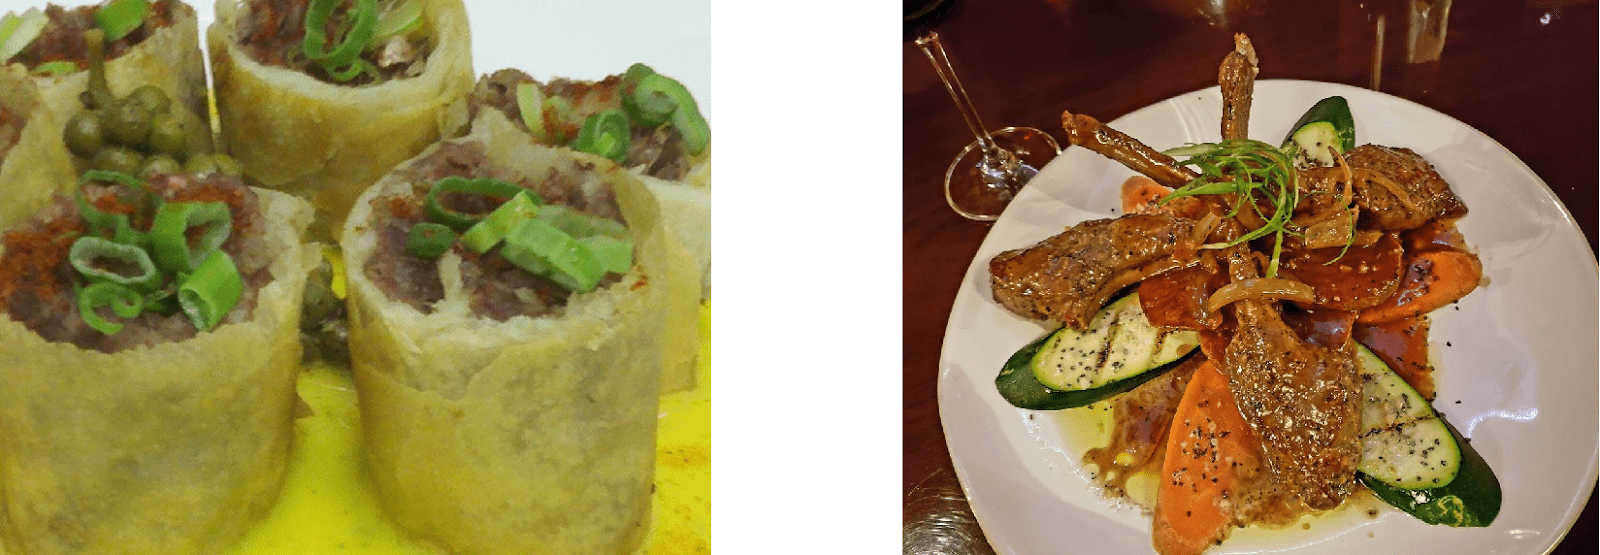 Brand Photo Comparison Of Two Food Dishes From Same Restaurant To Demonstrate Importance Of Quality Photos